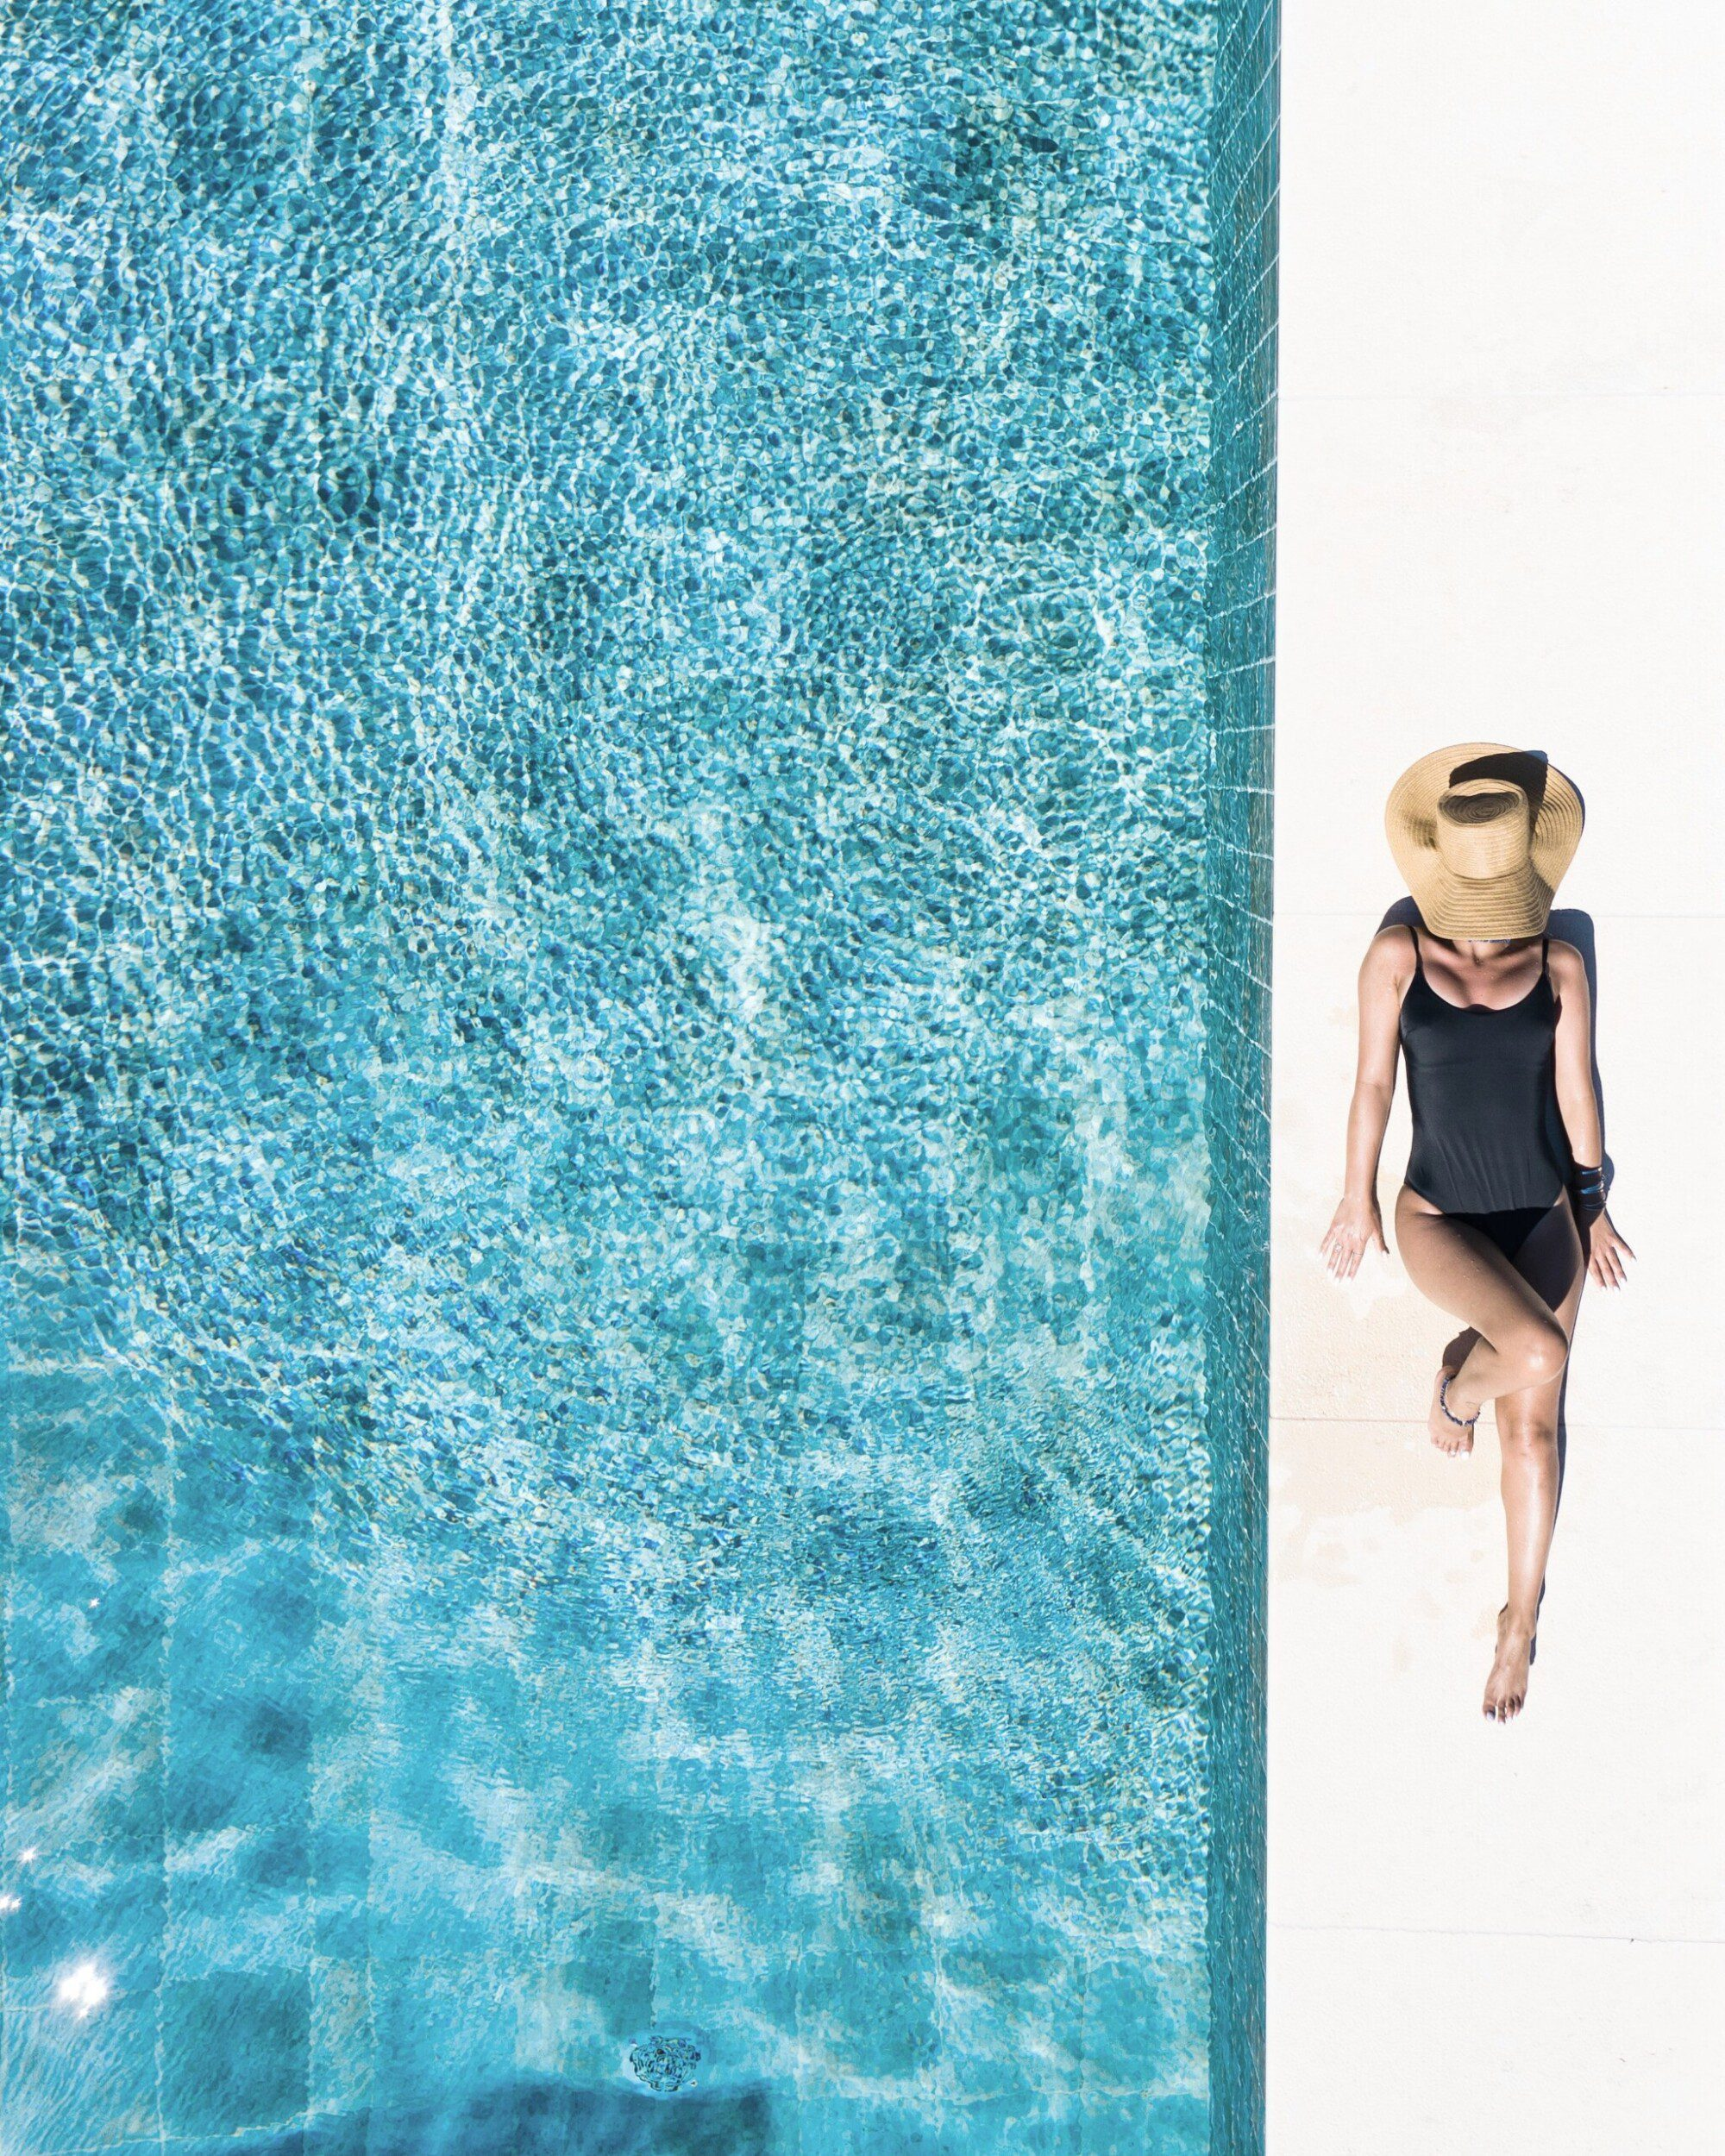 A woman relaxing laying at the edge of a sparkling blue pool.